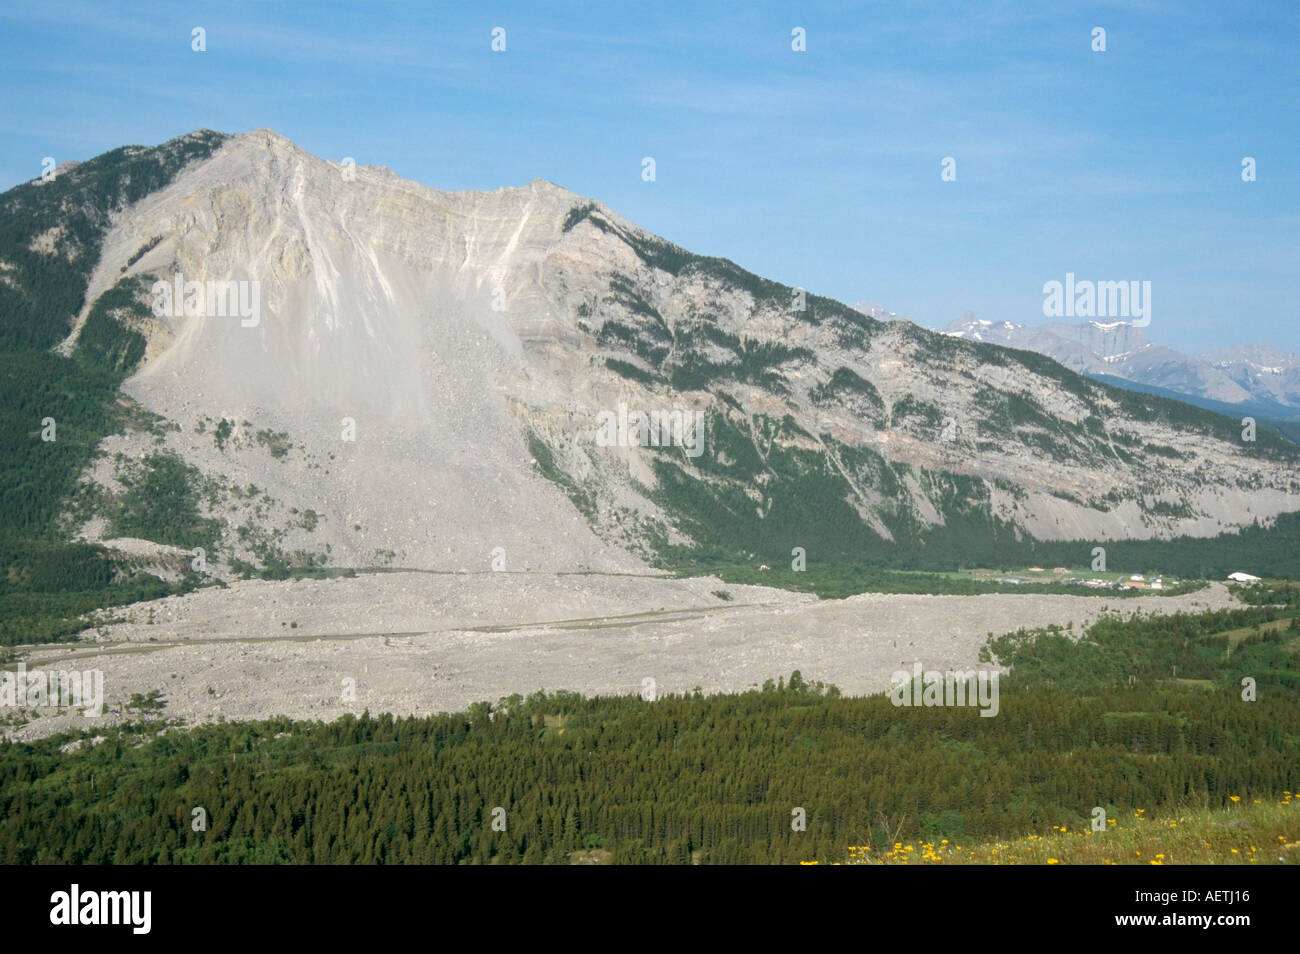 Frank Slide where giant rockfall occurred in 1903 limestone debris fell 400m Alberta Canada North America - Stock Image